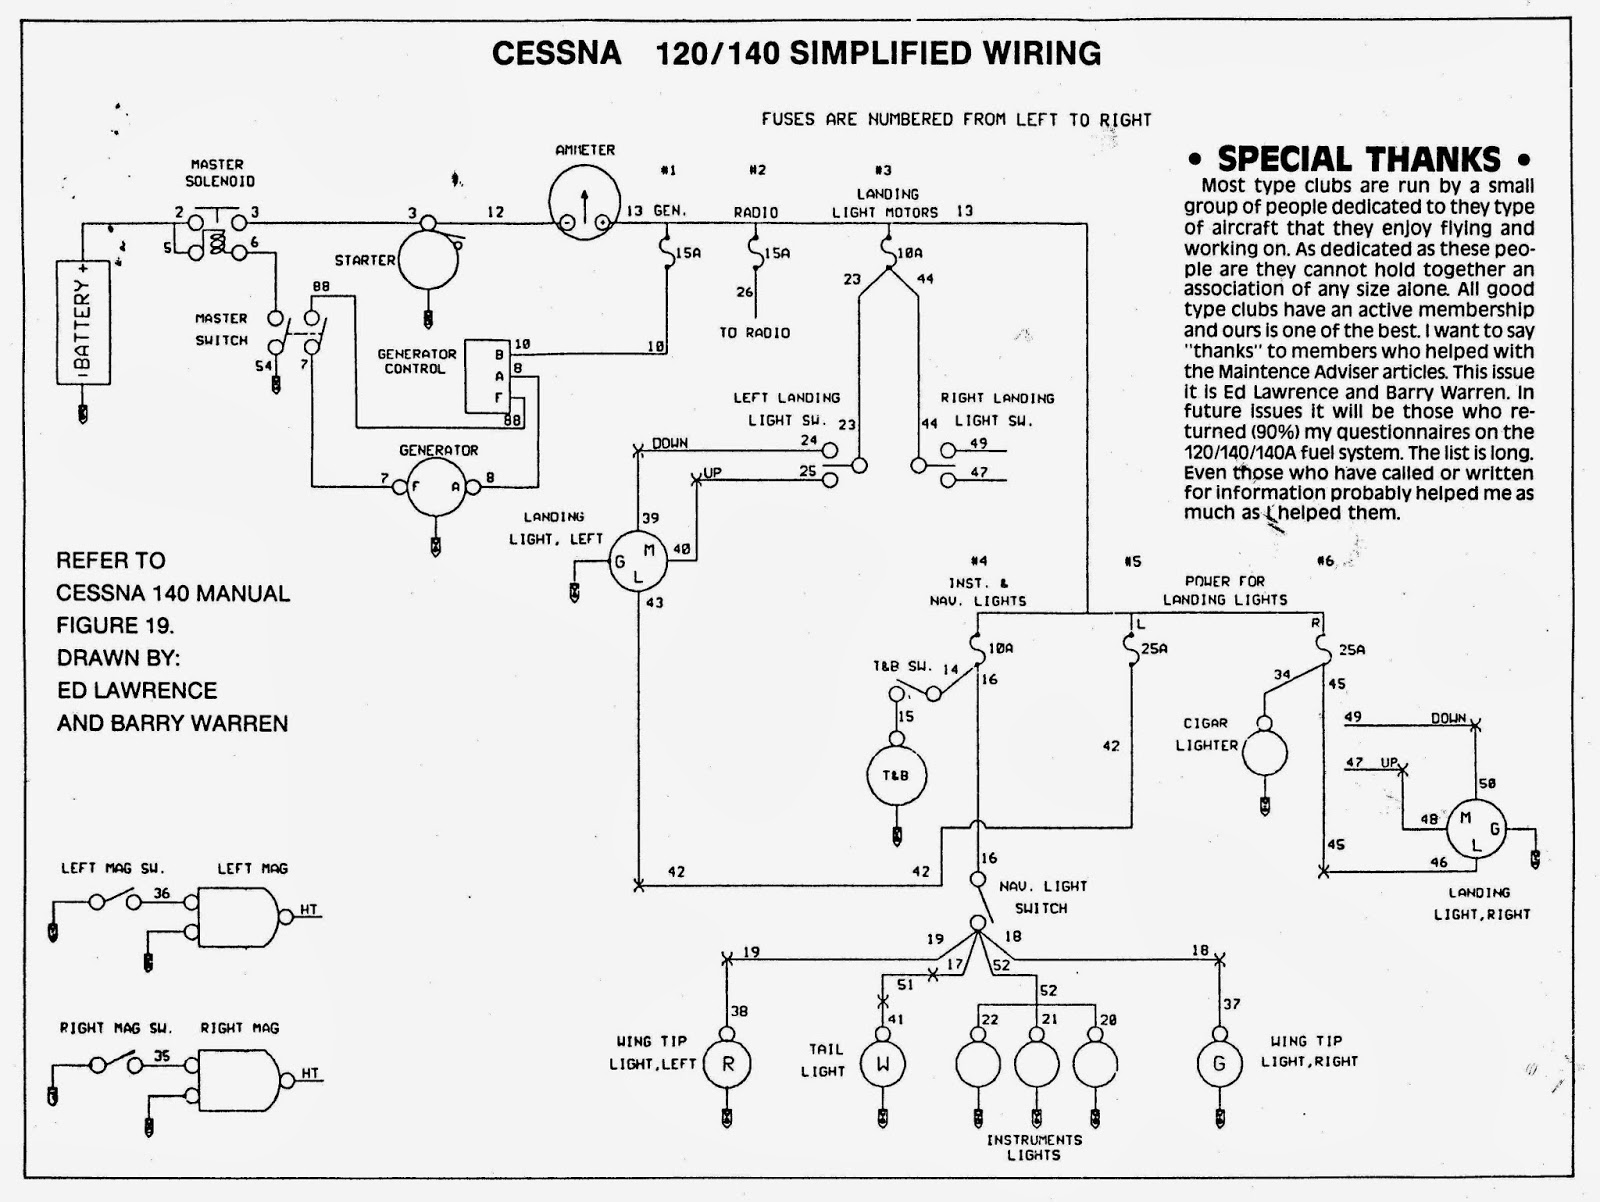 Aircraft electrical wiring diagram symbols somurich aircraft electrical wiring diagram symbols electrical manual dolgularrhdolgular asfbconference2016